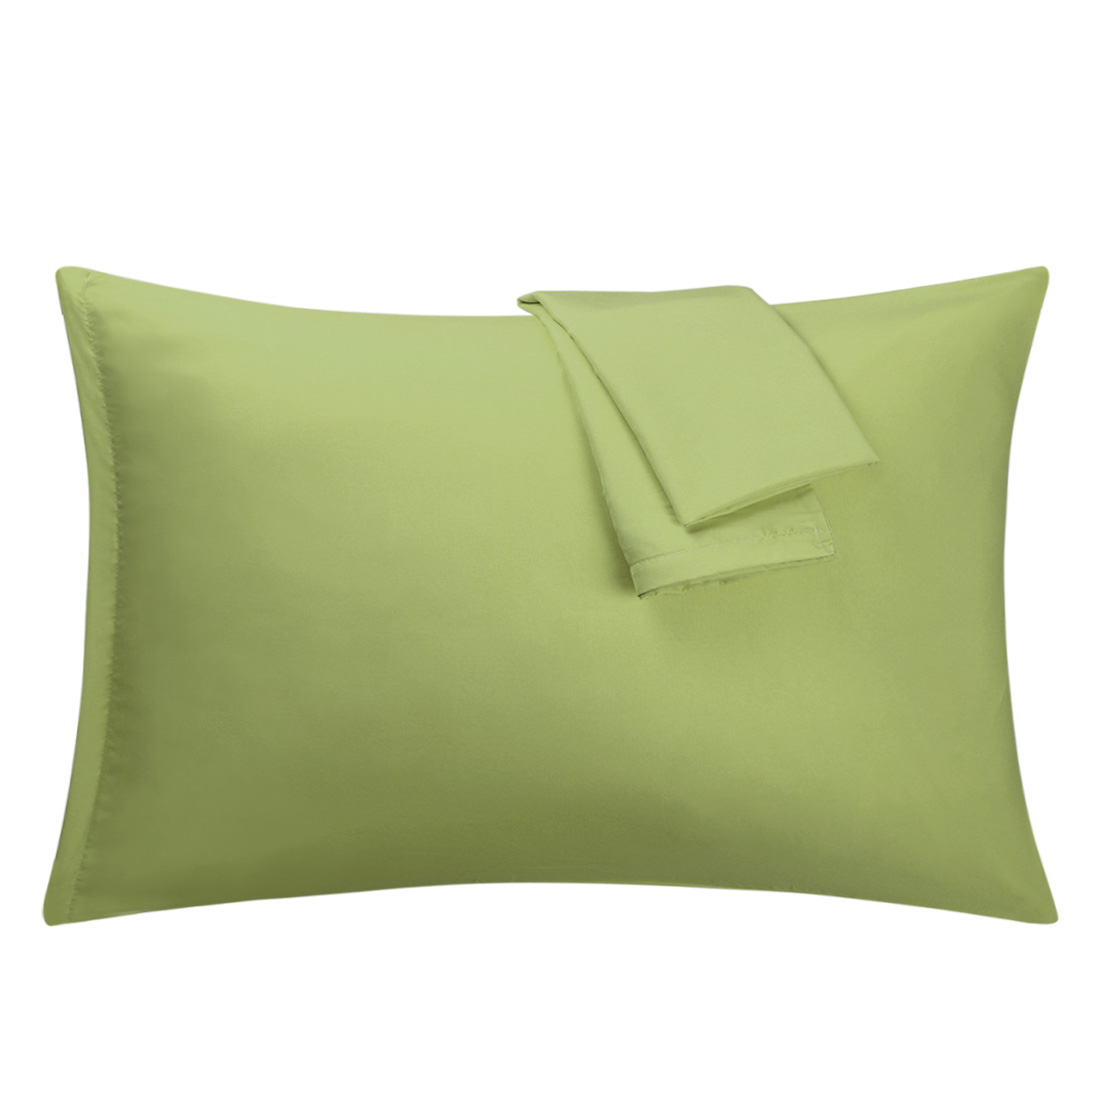 Sage Pillowcases Soft Microfiber Pillow Case Cover with Zipper Queen, 2 Pack